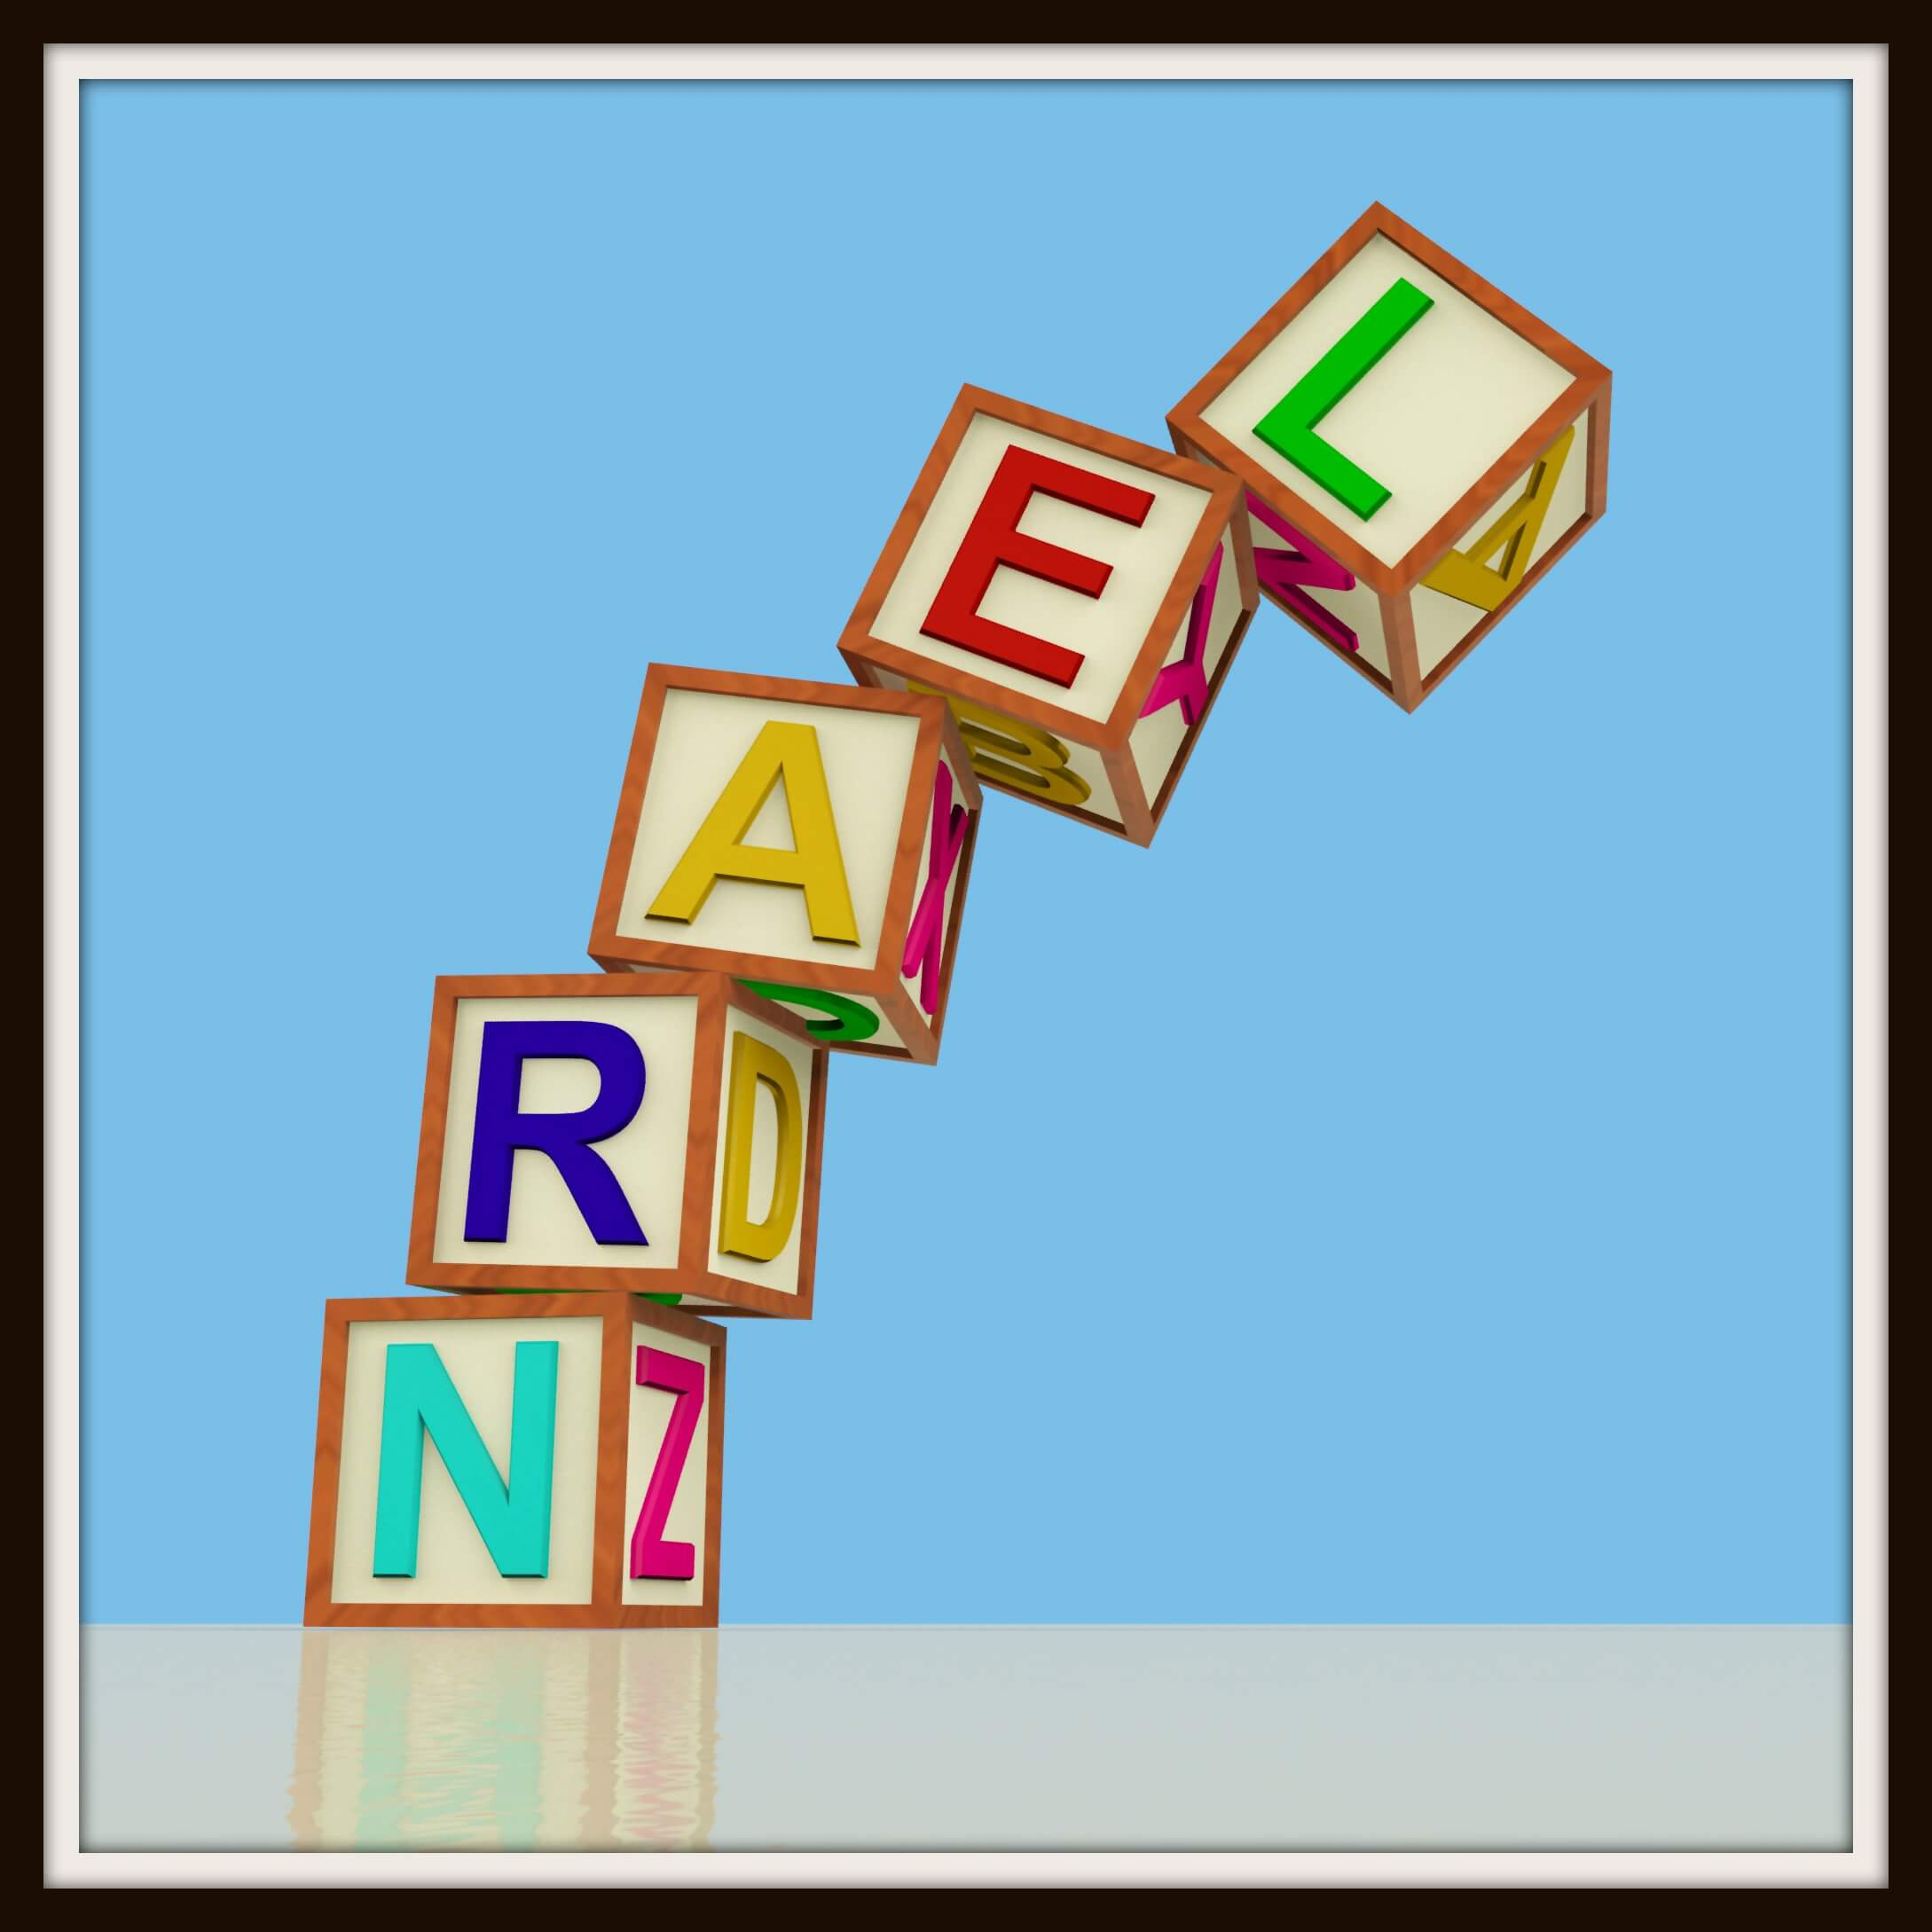 photodune-1141546-kids-blocks-spelling-learn-falling-over-as-symbol-for-study-and-education-m